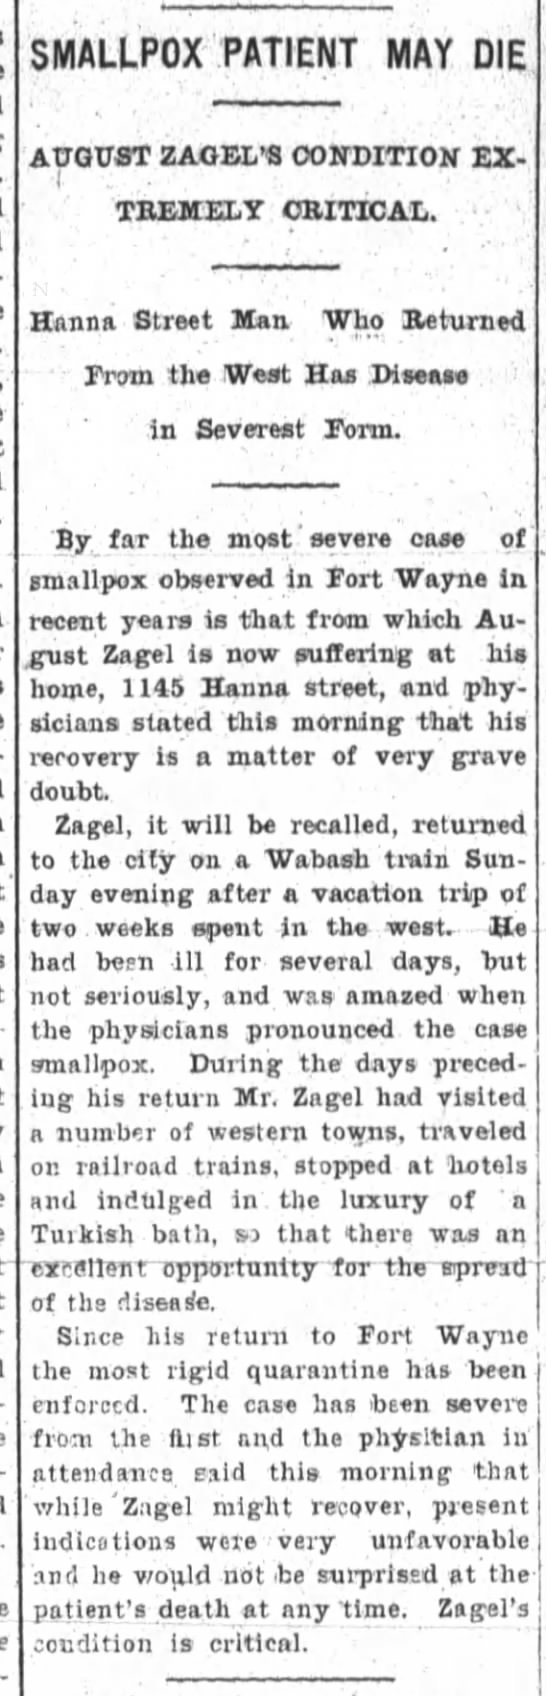 August Zagel, The Ft.Wayne Sentinel, 23 July 1902, Wed. p.4 Smallpox -